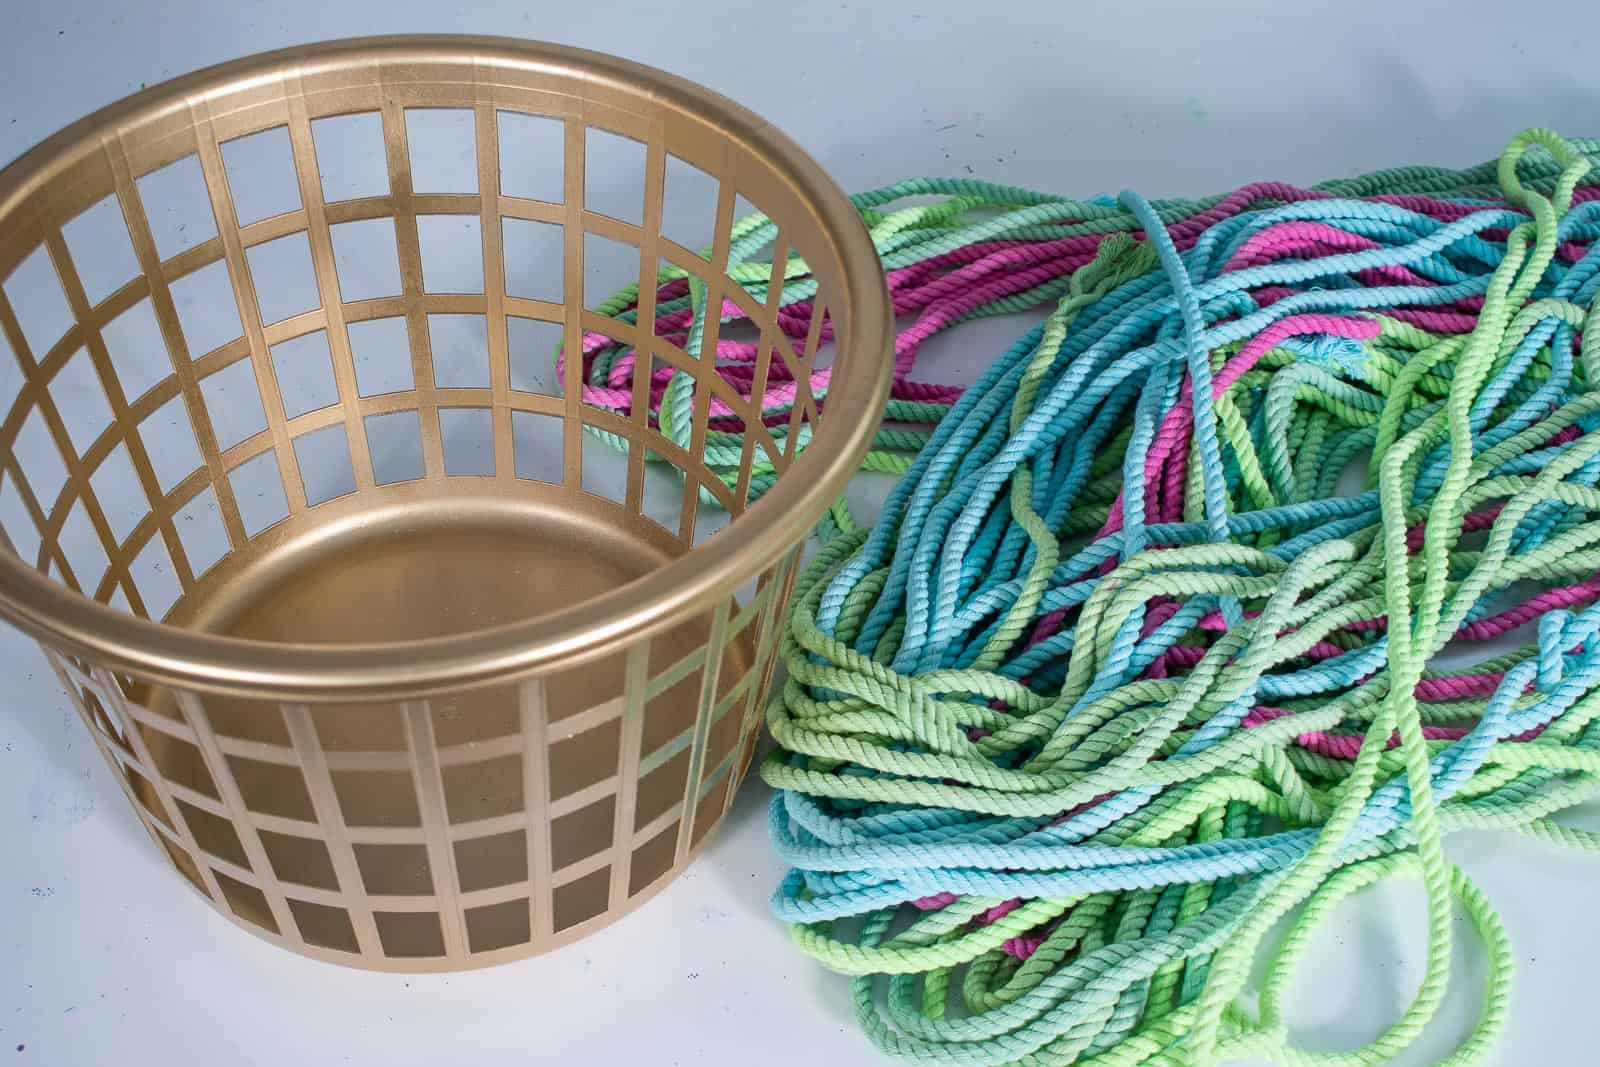 dyed rope and gold basket